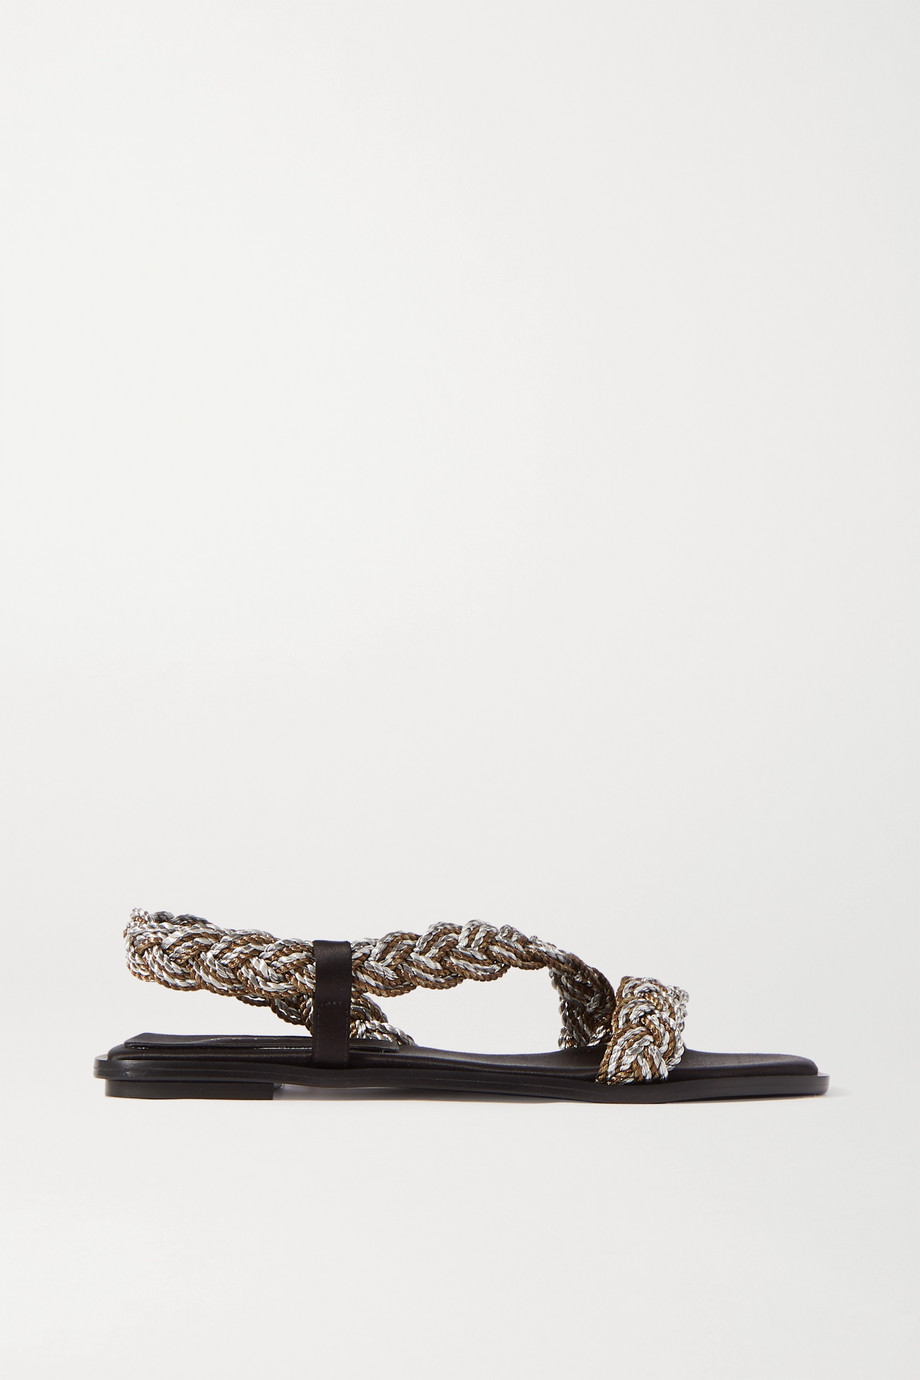 Serena Uziyel Ronda braided metallic rope and satin slingback sandals